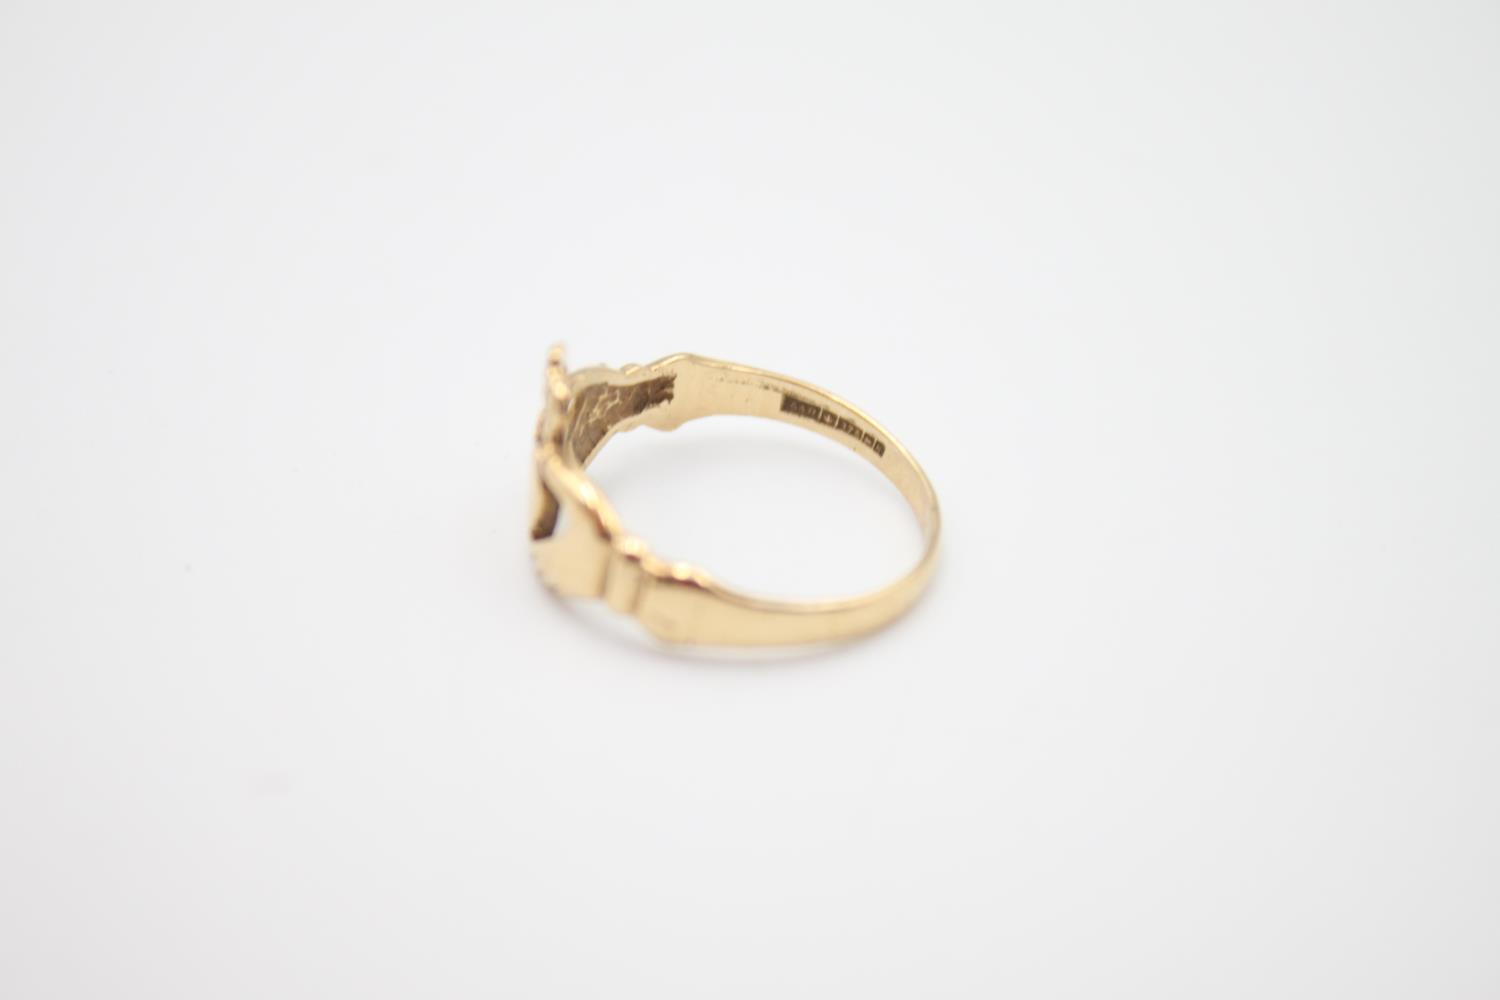 2 x 9ct gold Claddagh rings 4.1g Size K & O - Image 5 of 5